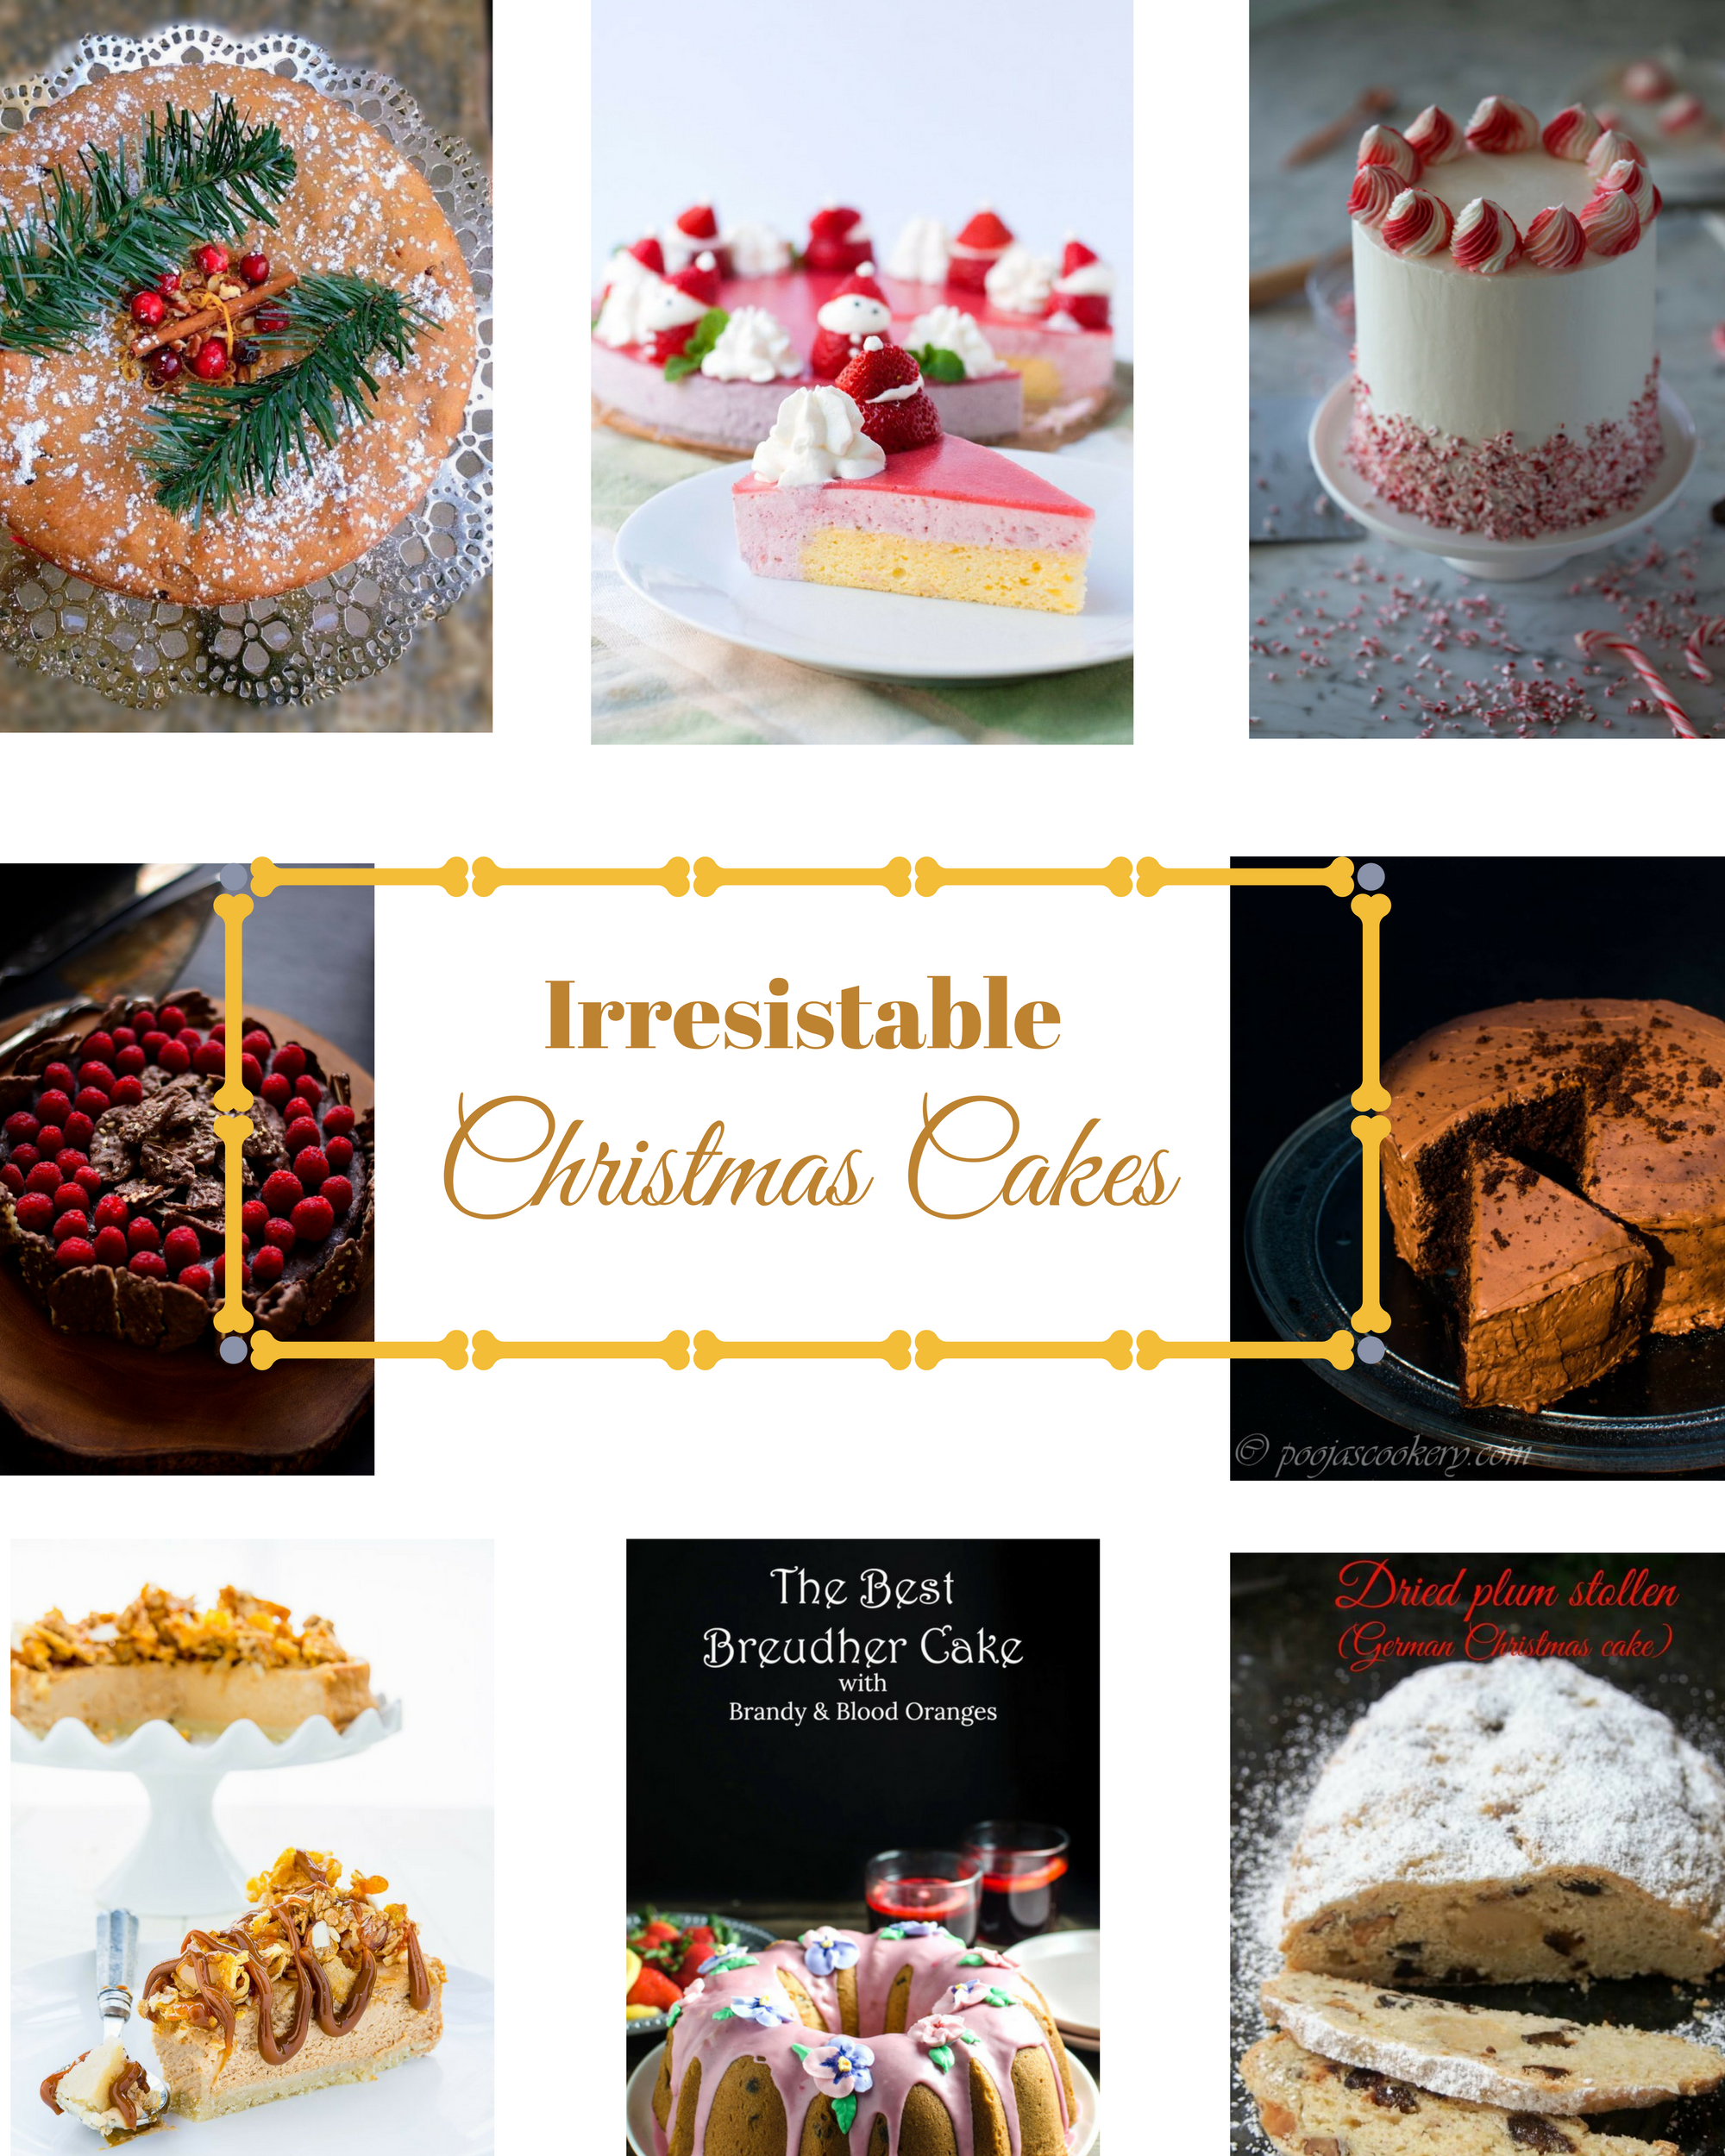 Irresistable Christmas Cakes|poojascookery.com